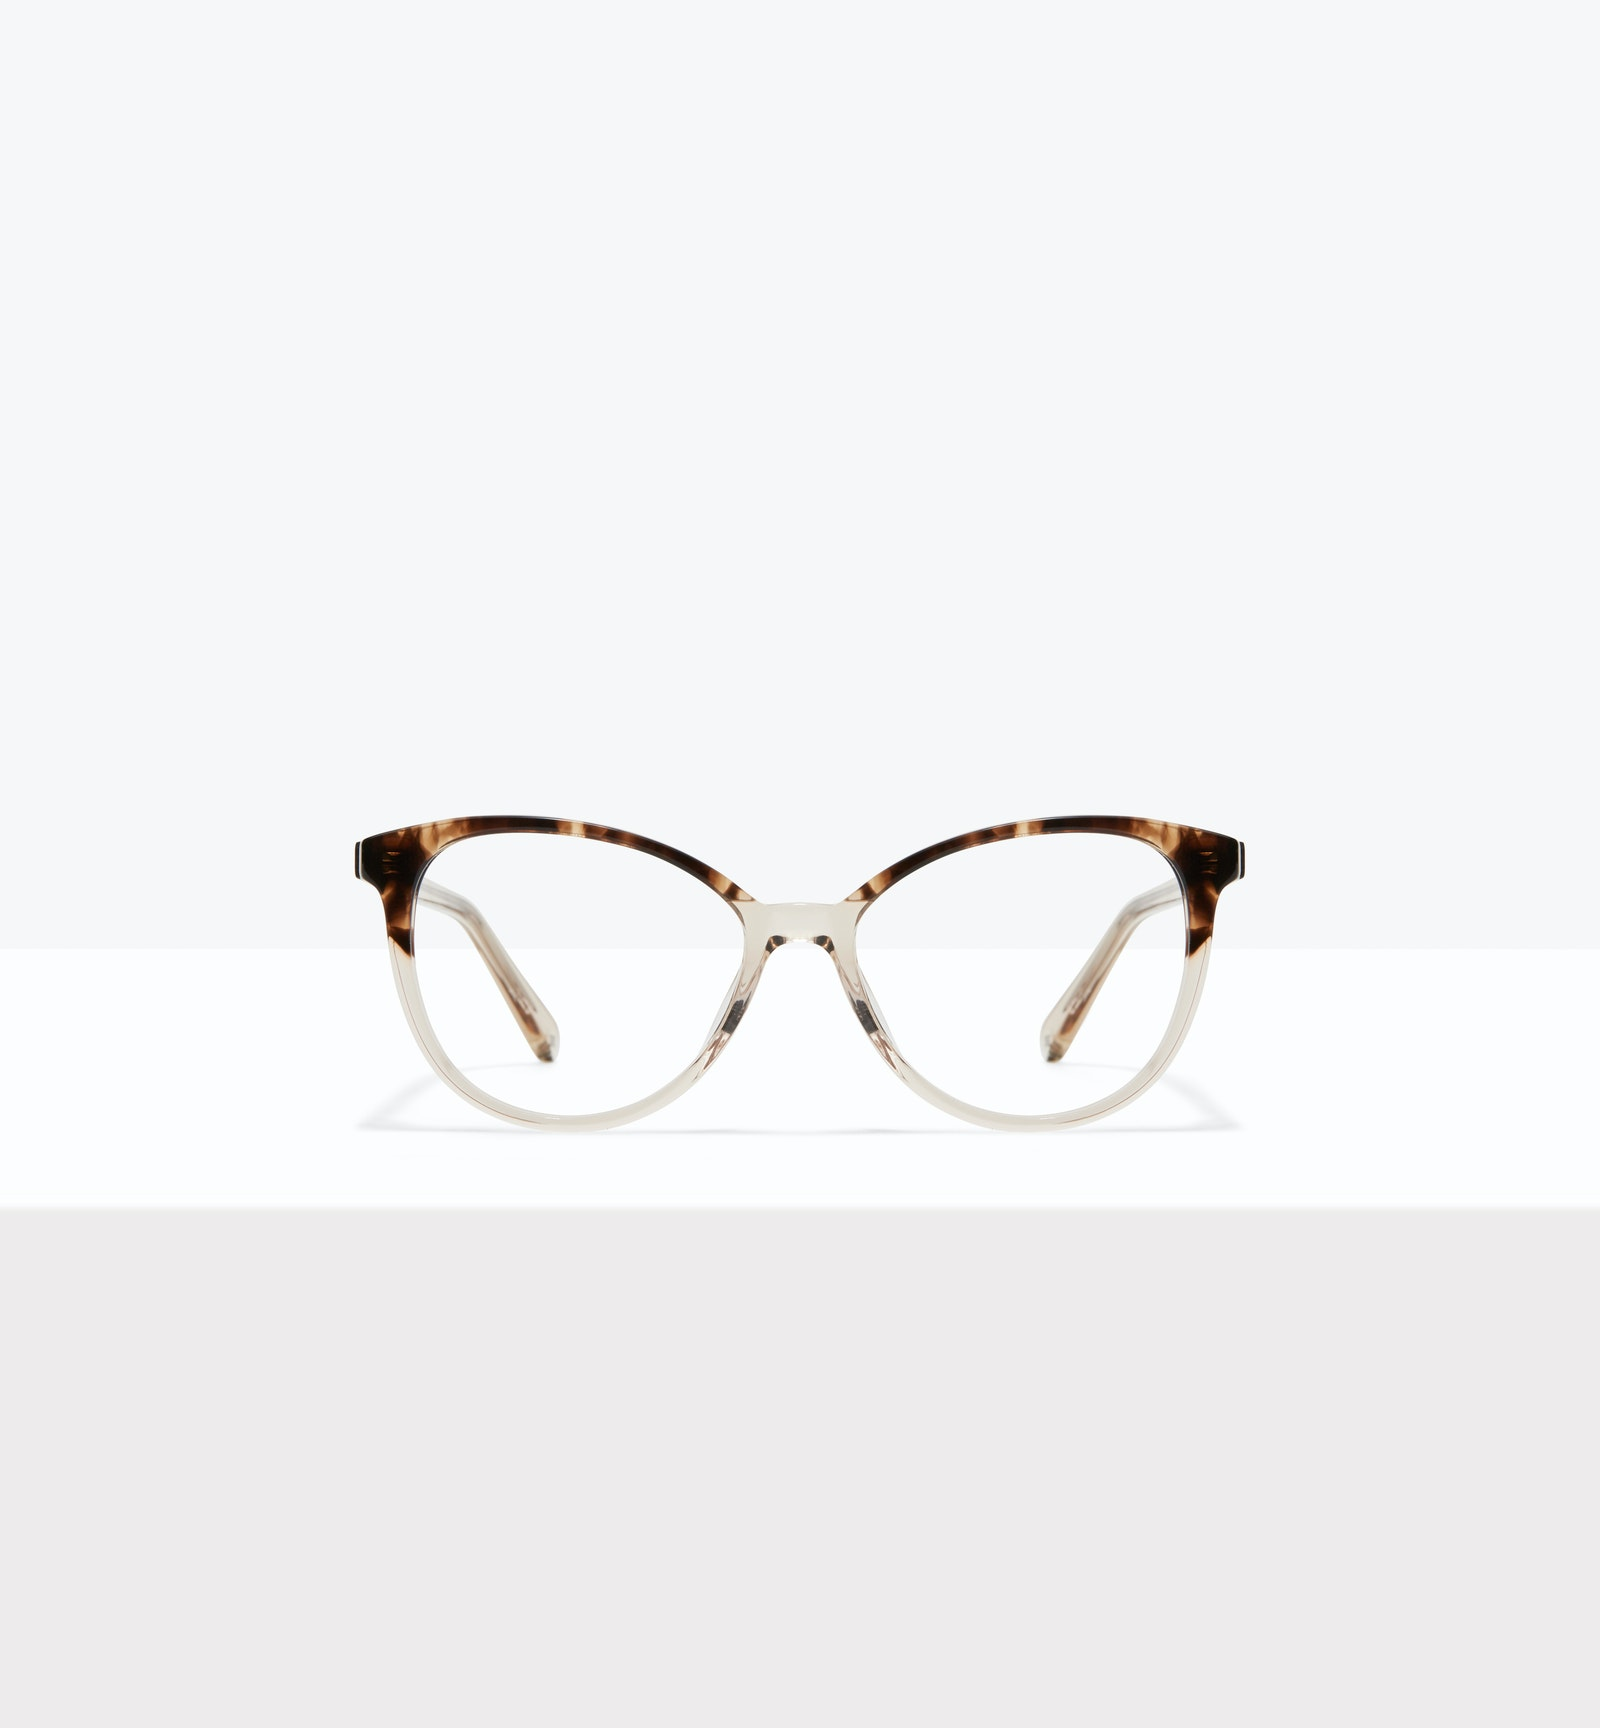 Affordable Fashion Glasses Cat Eye Eyeglasses Women Esprit M Golden Tortoise